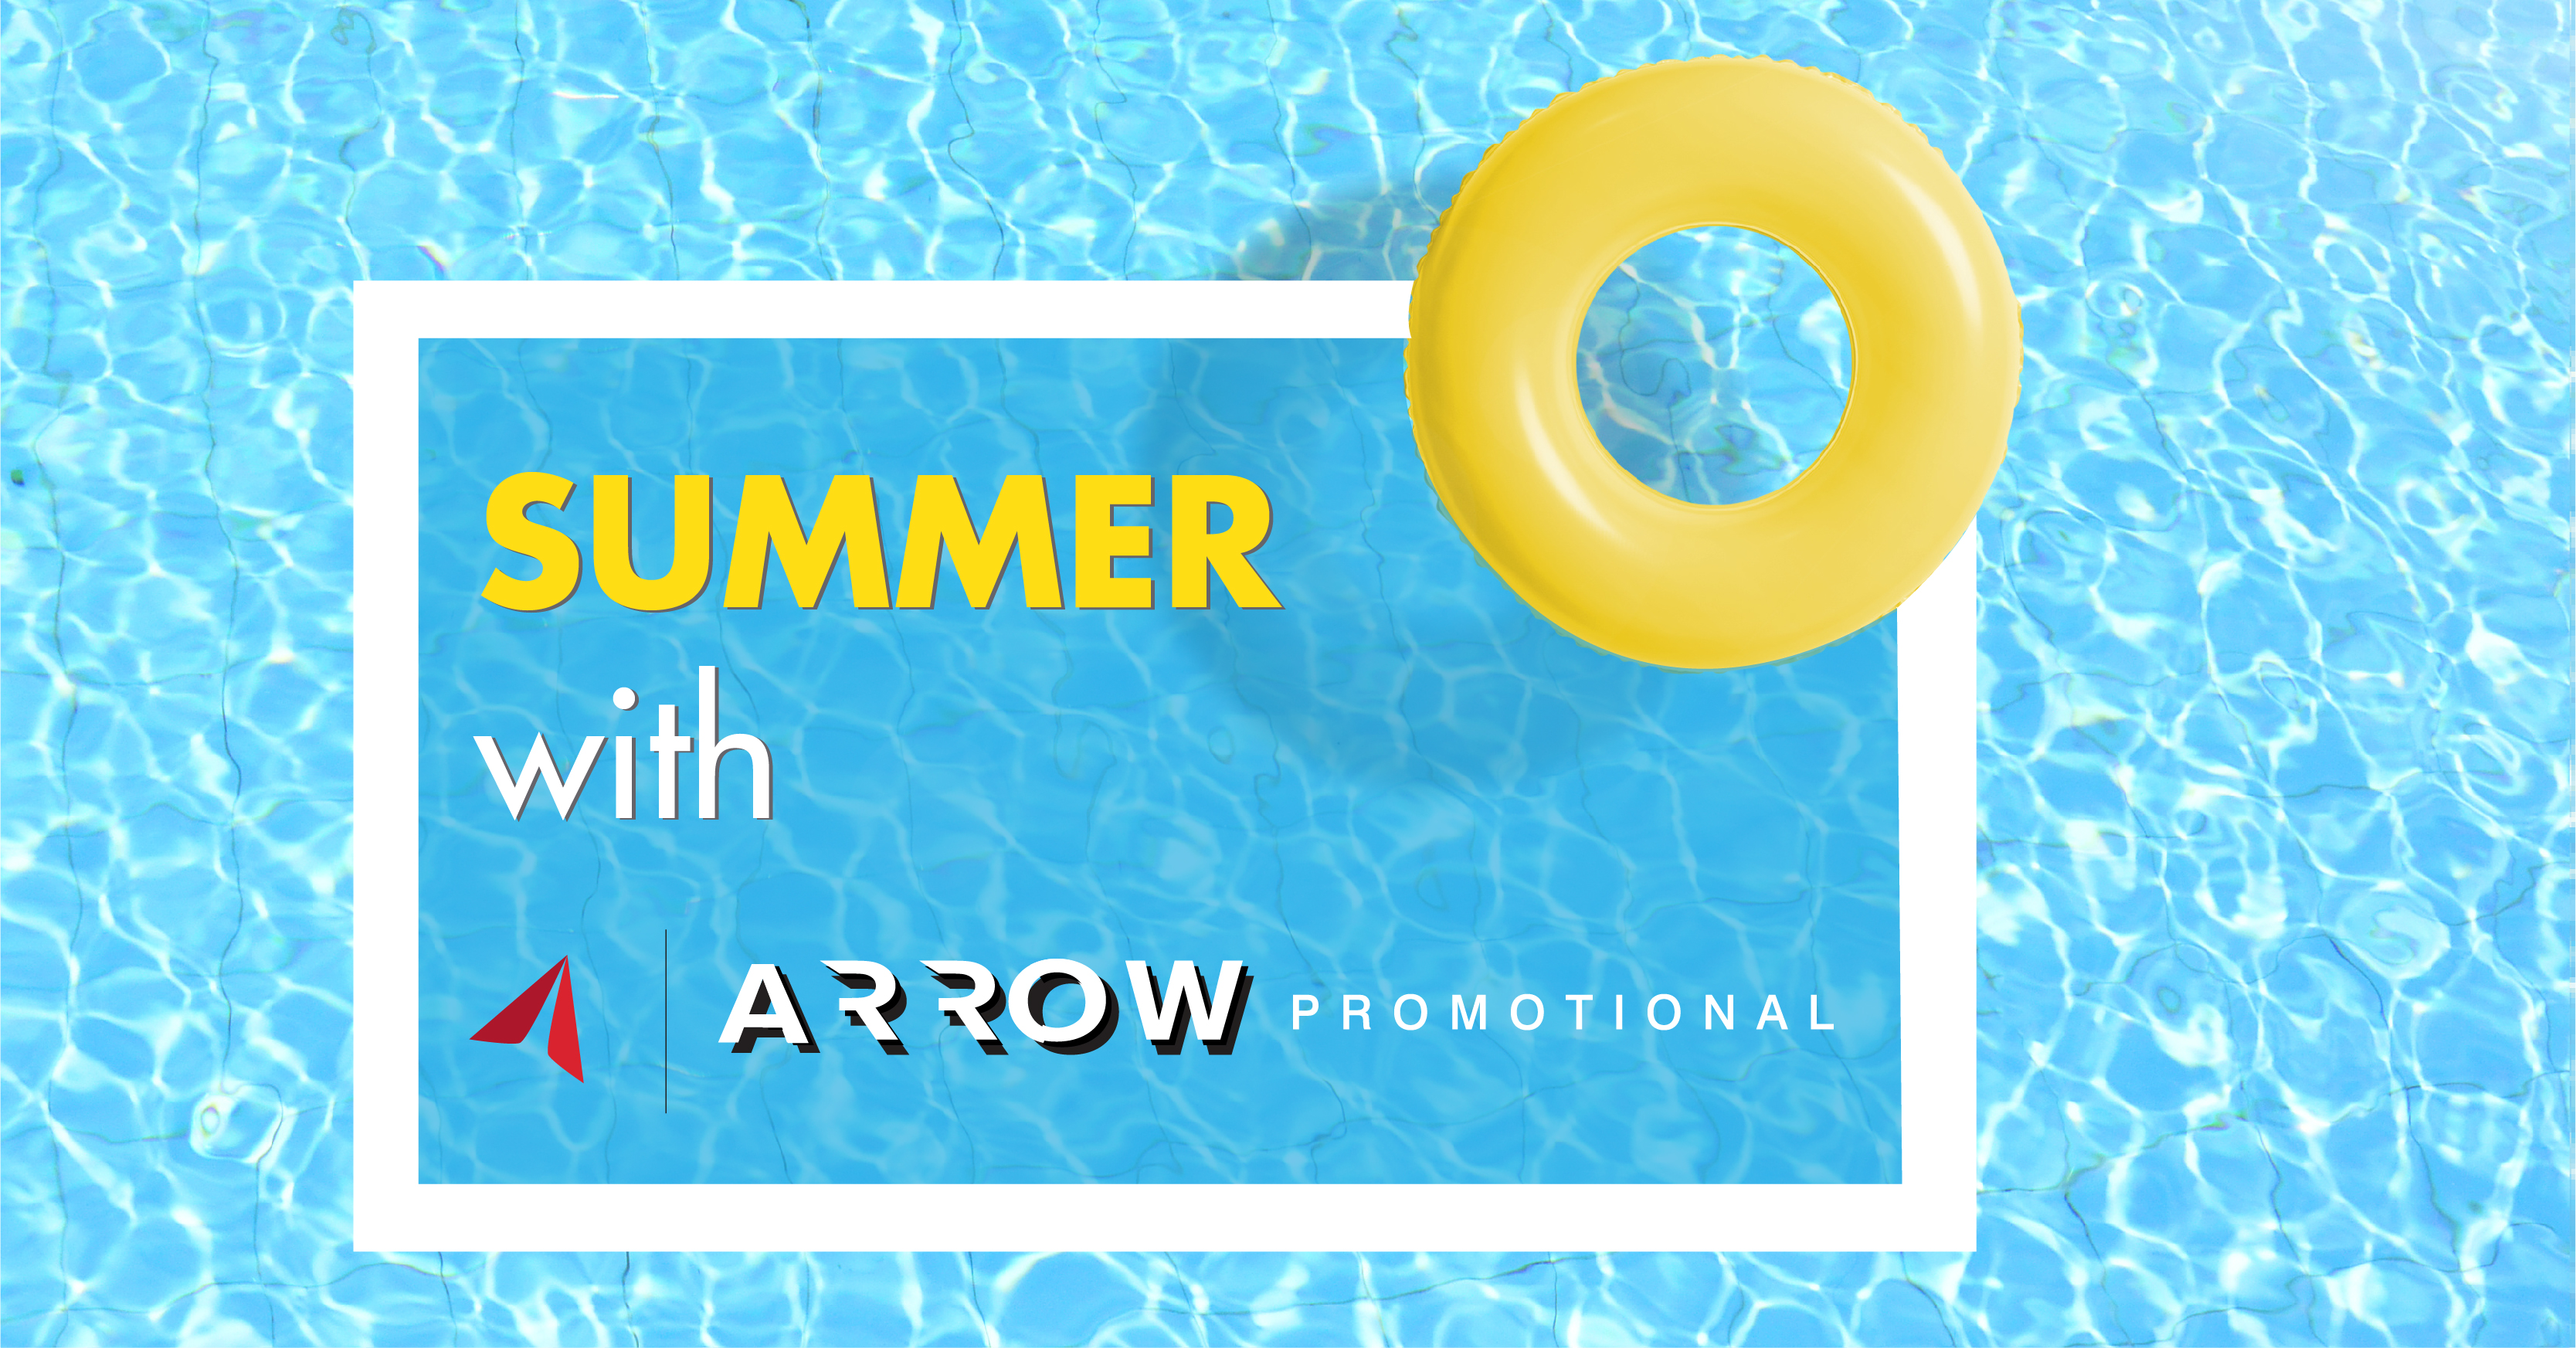 Arrow Promotional_Summer